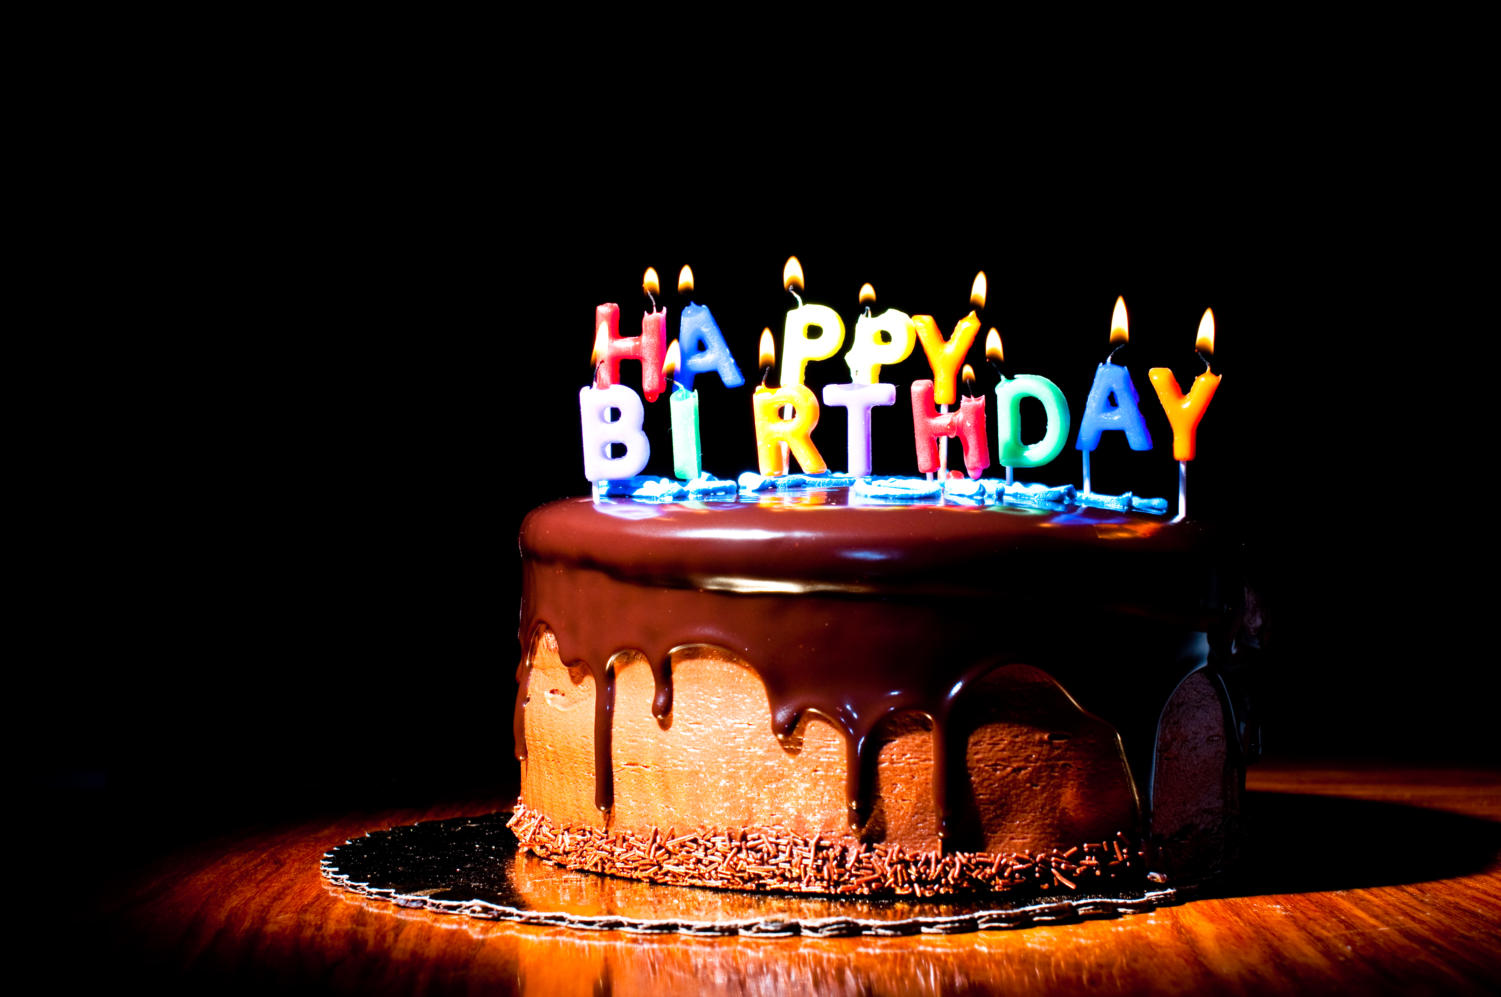 Each birthday celebrates another year of life passed; however, when one turns 18, they are officially an adult.